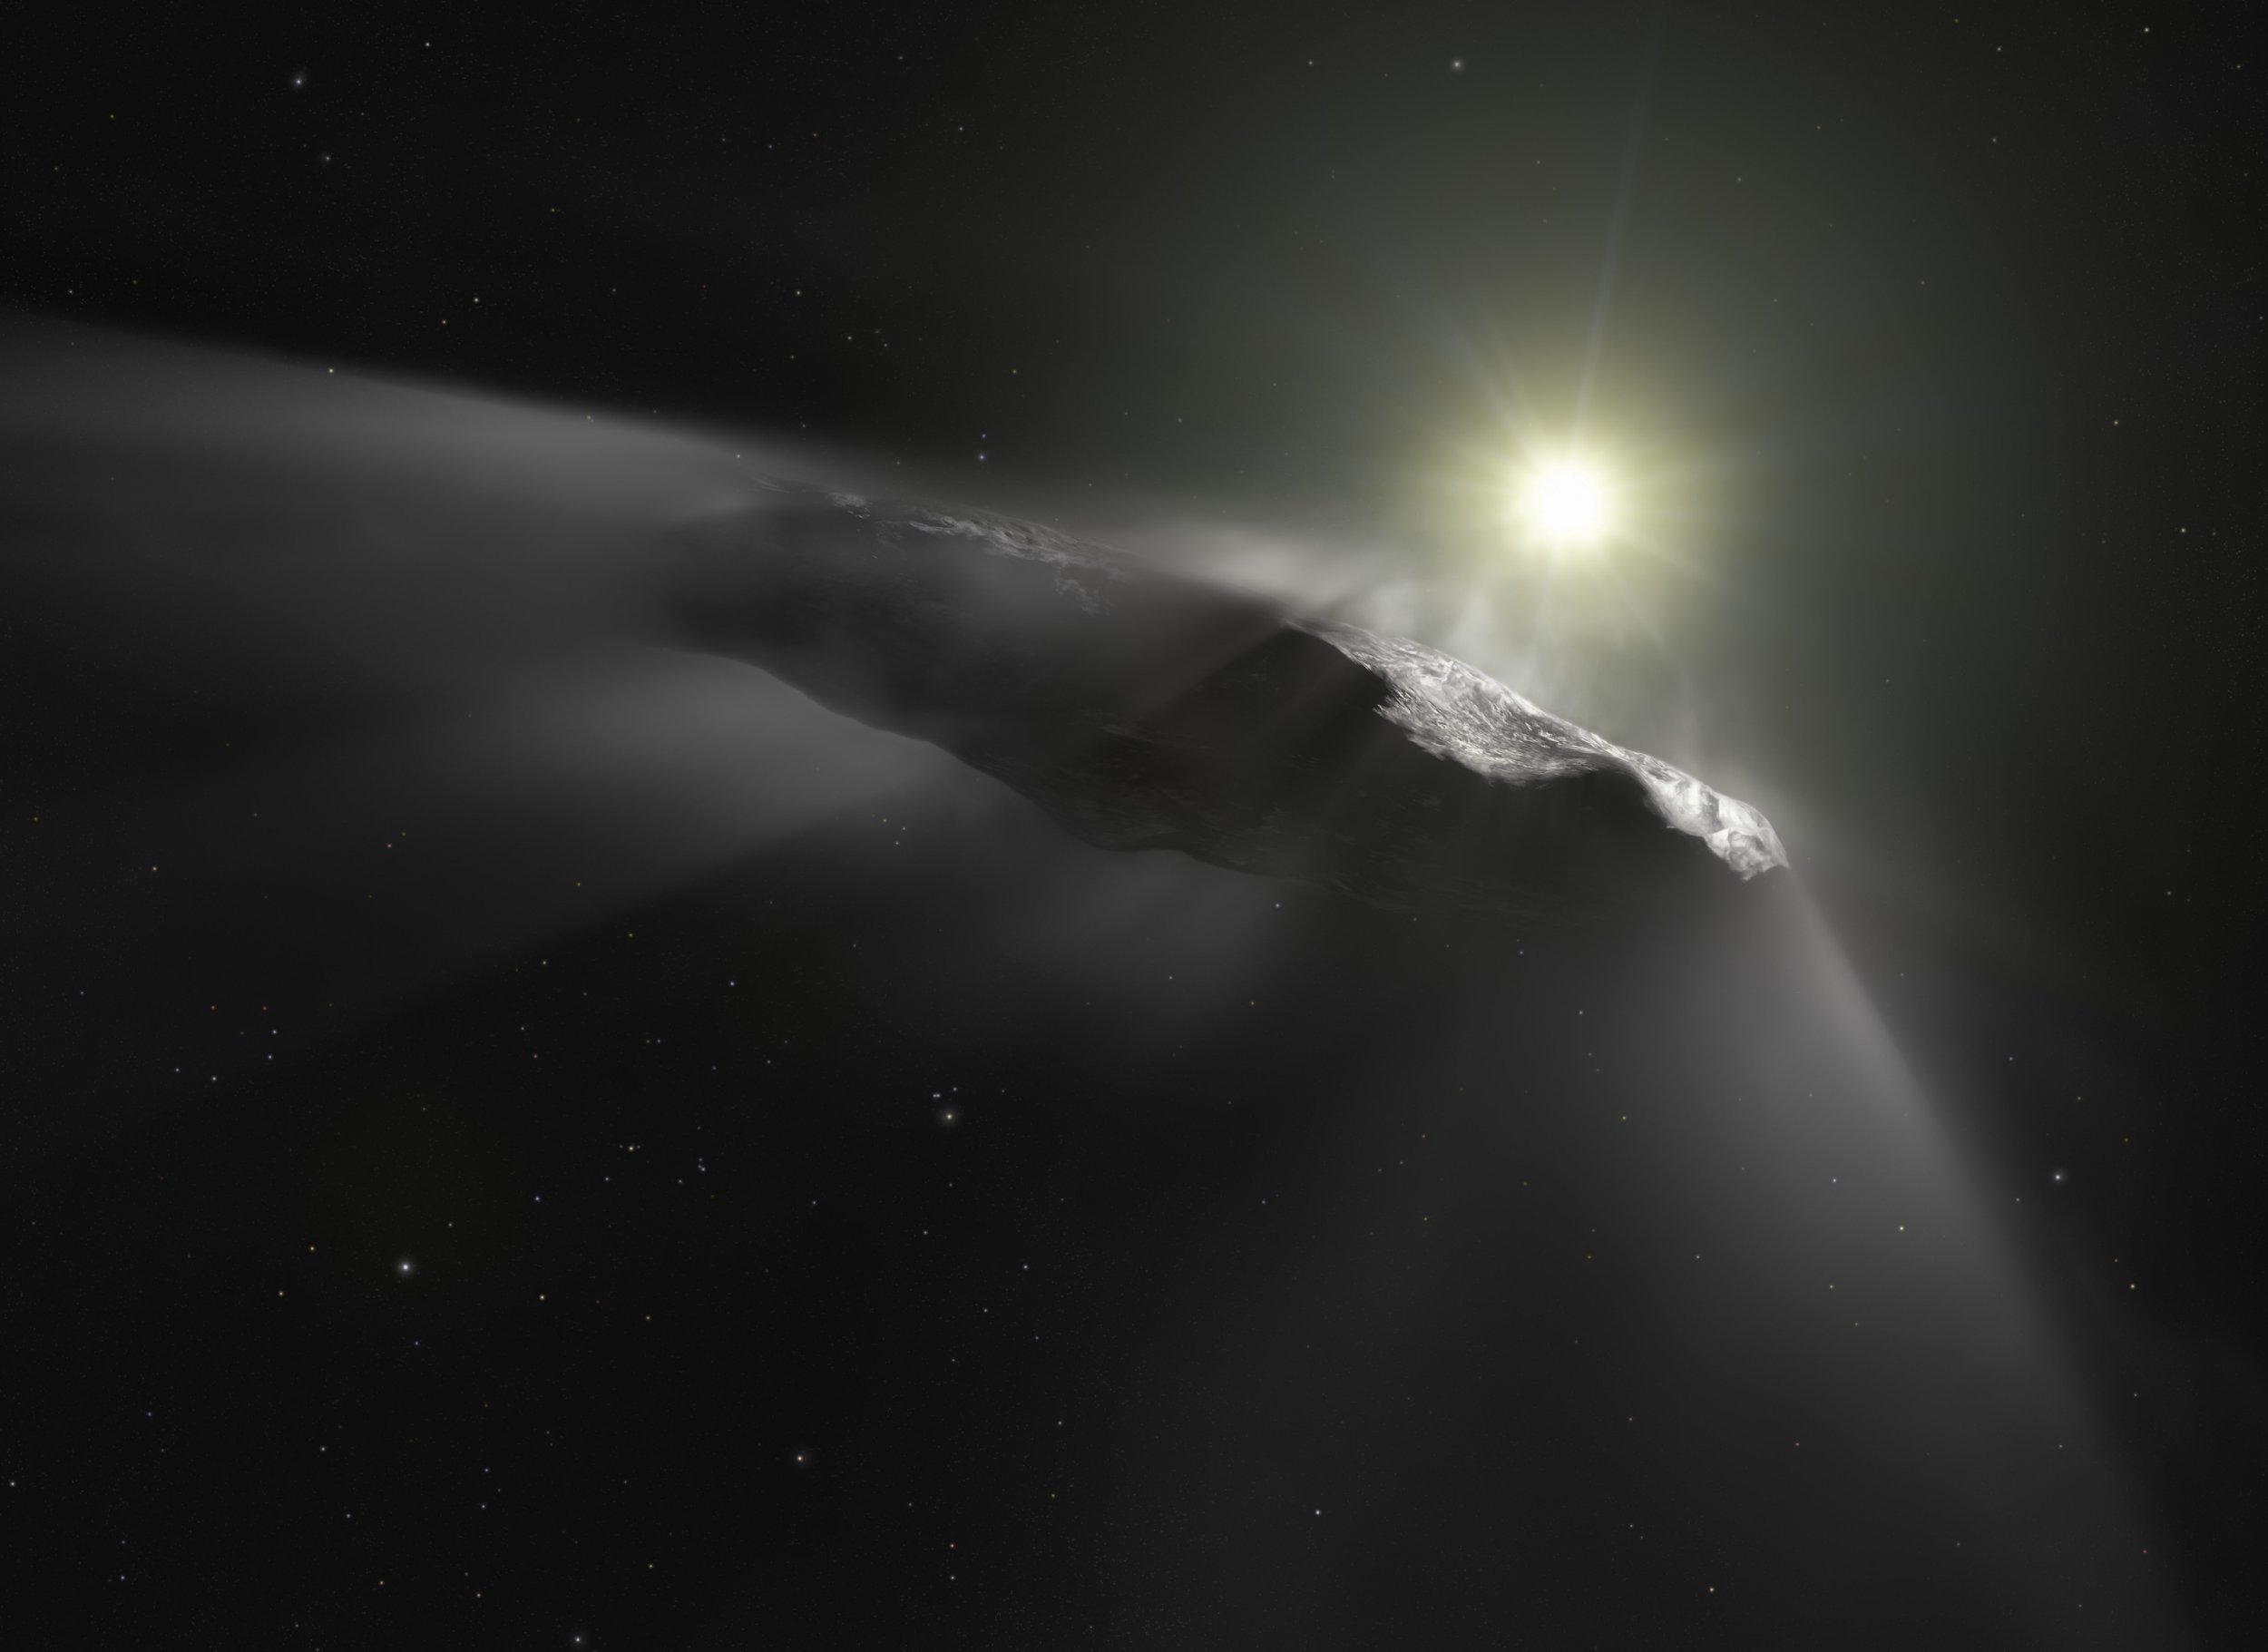 This artist???s impression shows the first interstellar object discovered in the Solar System, `Oumuamua. Observations made with the NASA/ESA Hubble Space Telescope and others show that the object is moving faster than predicted while leaving the Solar System. Researchers assume that venting material from its surface due to solar heating is responsible for this behaviour. This outgassing can be seen in this artist???s impression as a subtle cloud being ejected from the side of the object facing the Sun. As outgassing is a behaviour typical for comets, the team thinks that `Oumuamua???s previous classification as an interstellar asteroid has to be corrected.